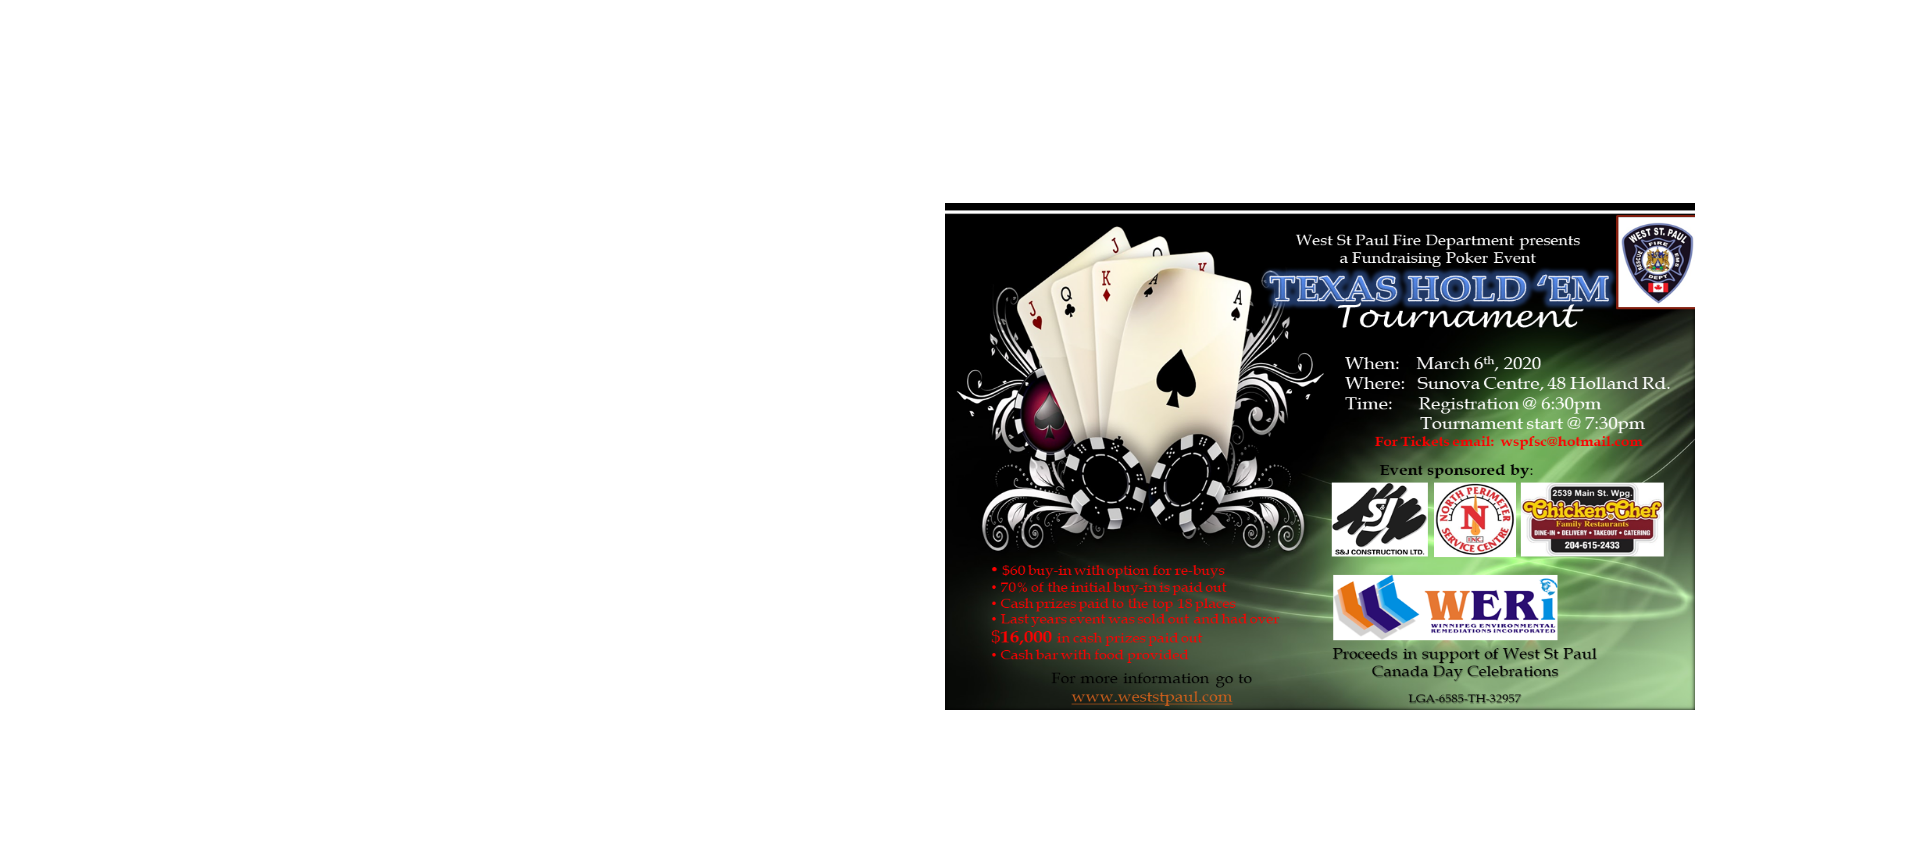 Fundraising Poker Event